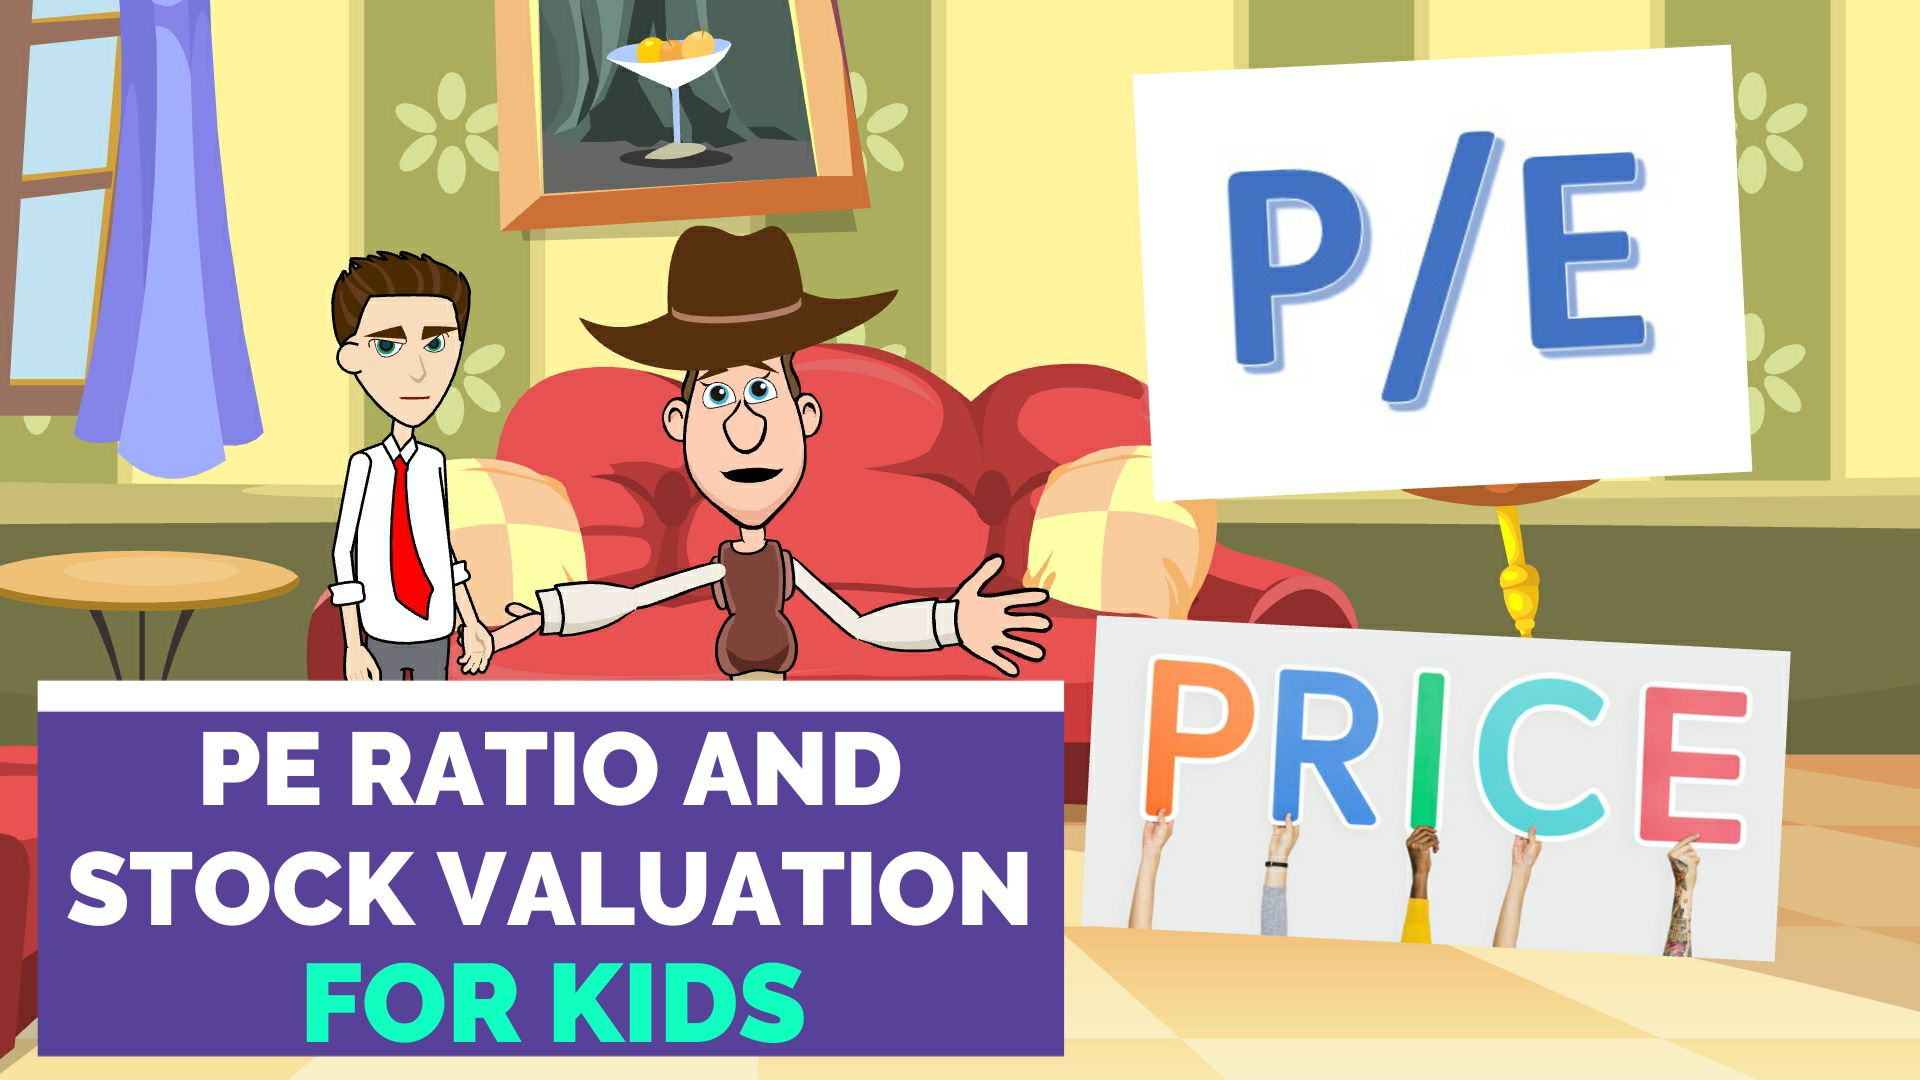 Using PE Ratio for Stock Valuation